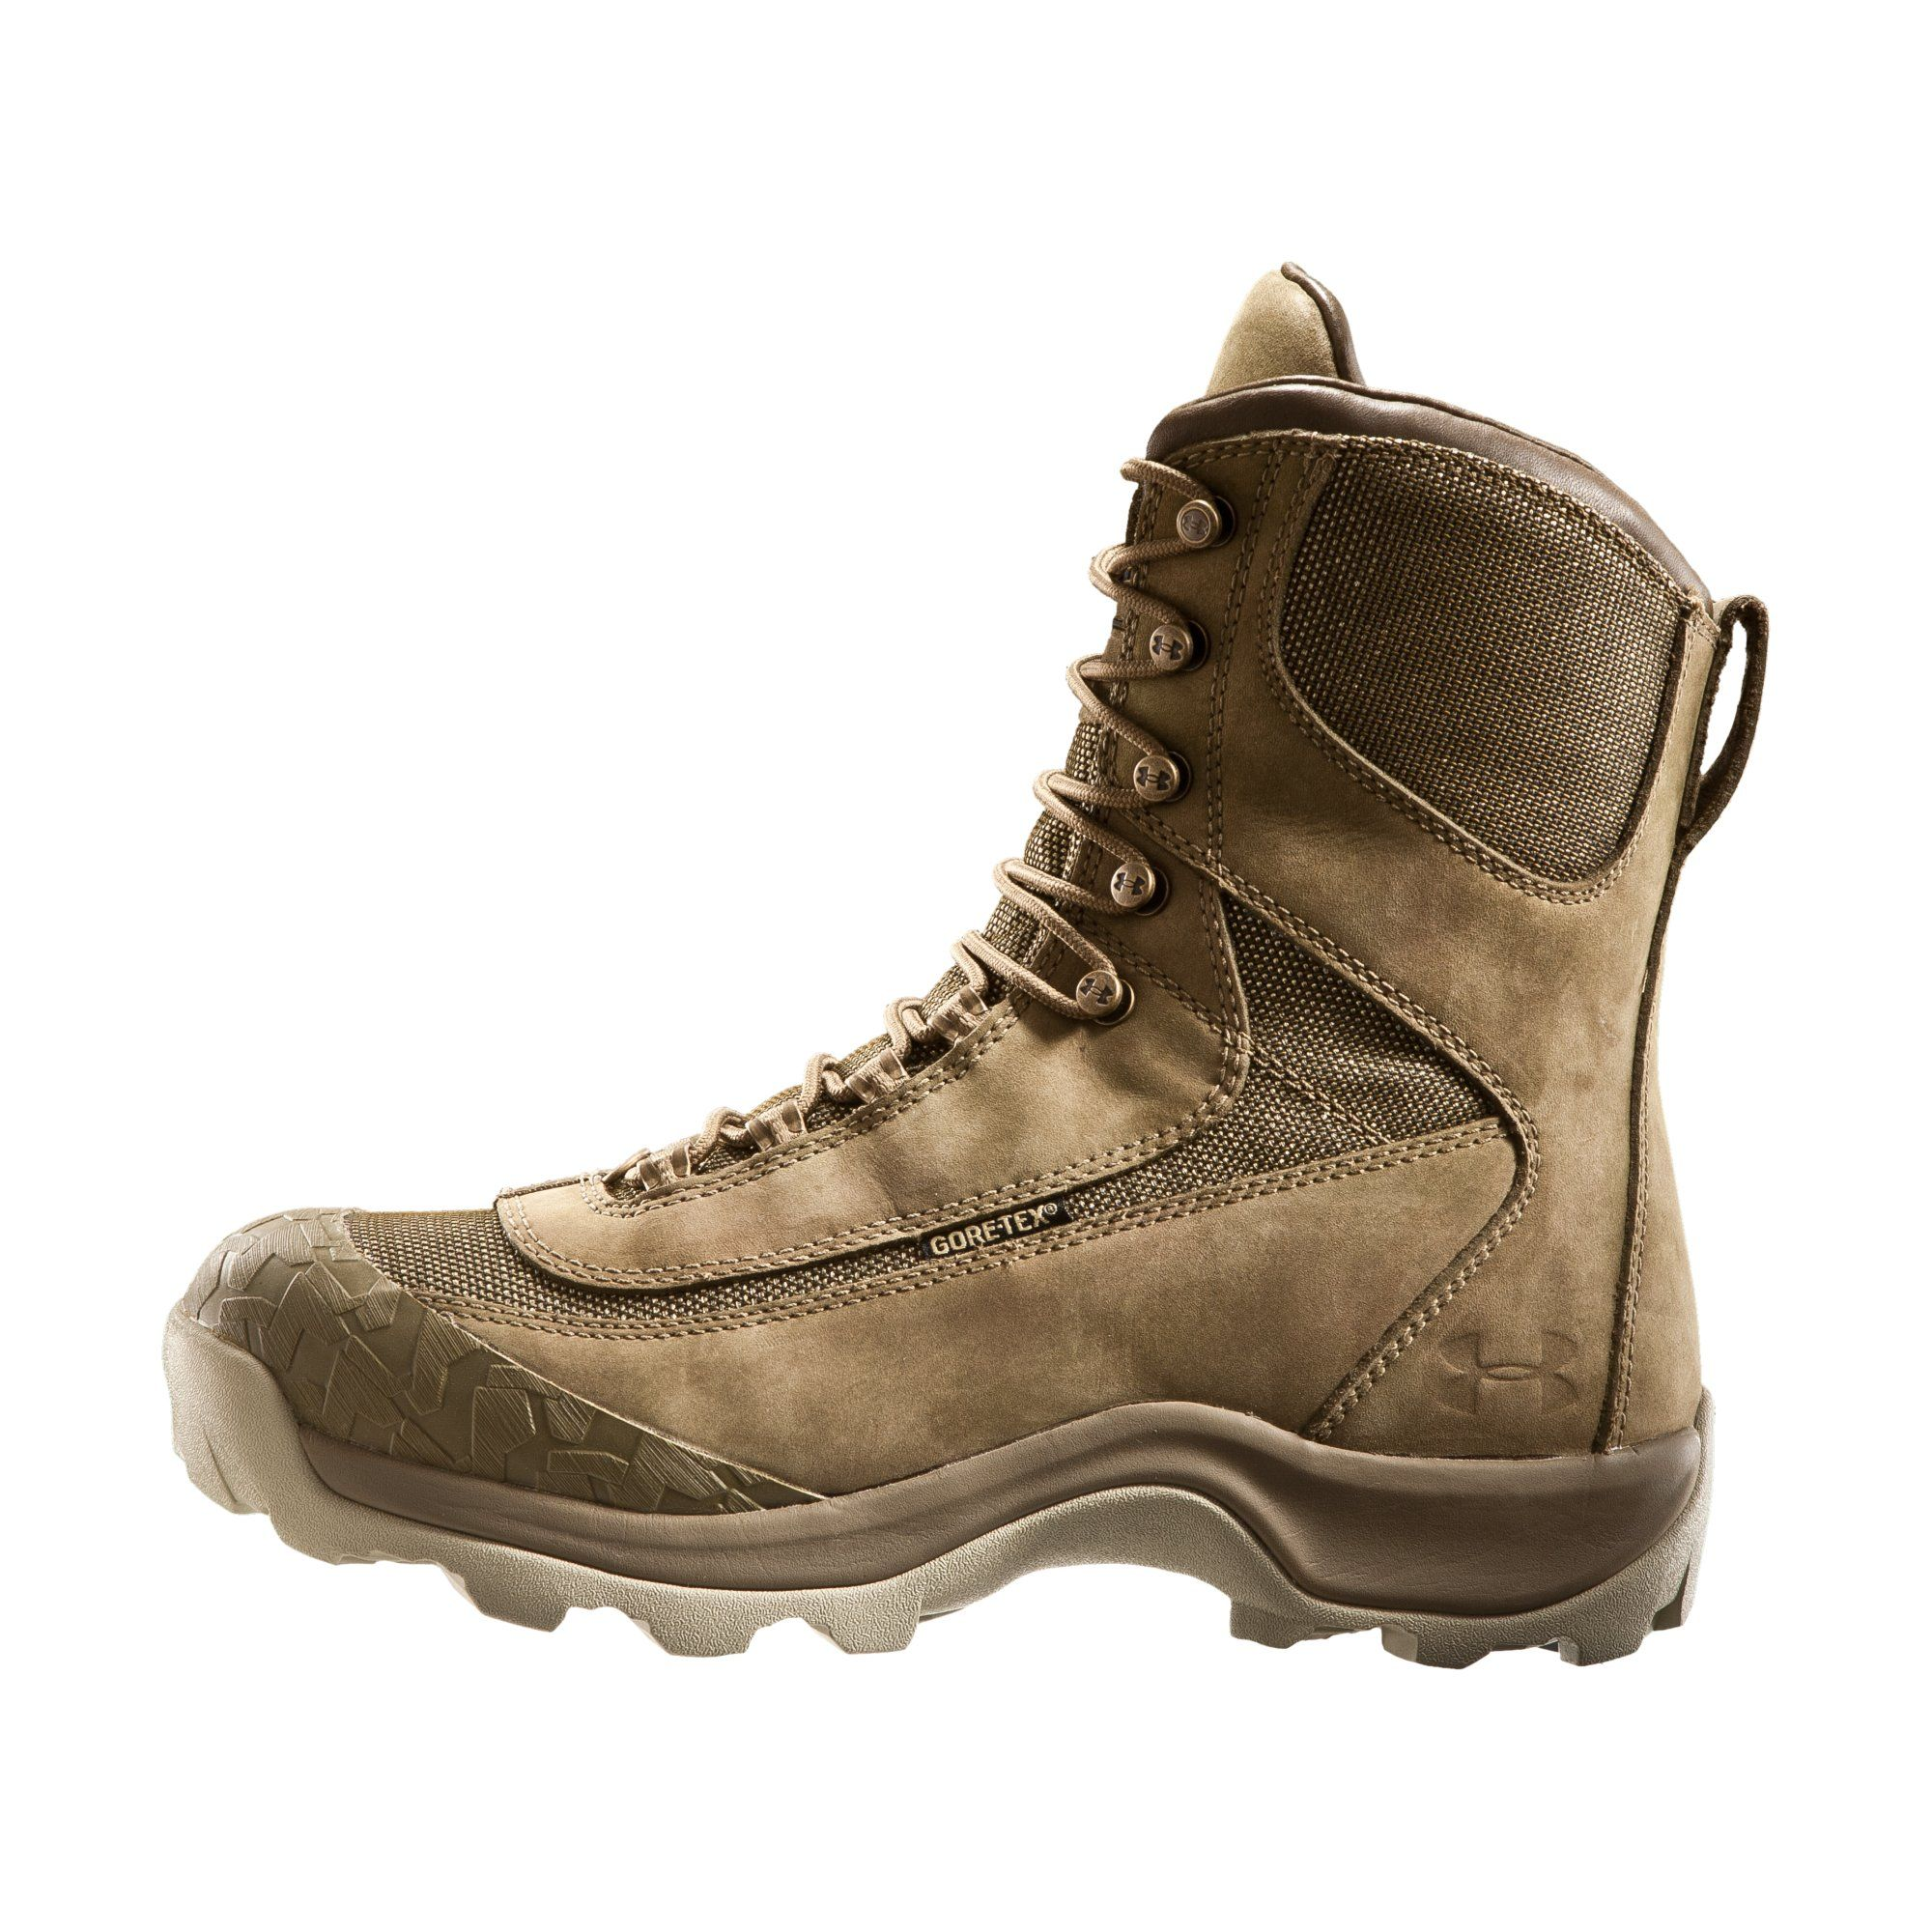 3a173810f Cheap under armour hunting boots clearance Buy Online  OFF57% Discounted